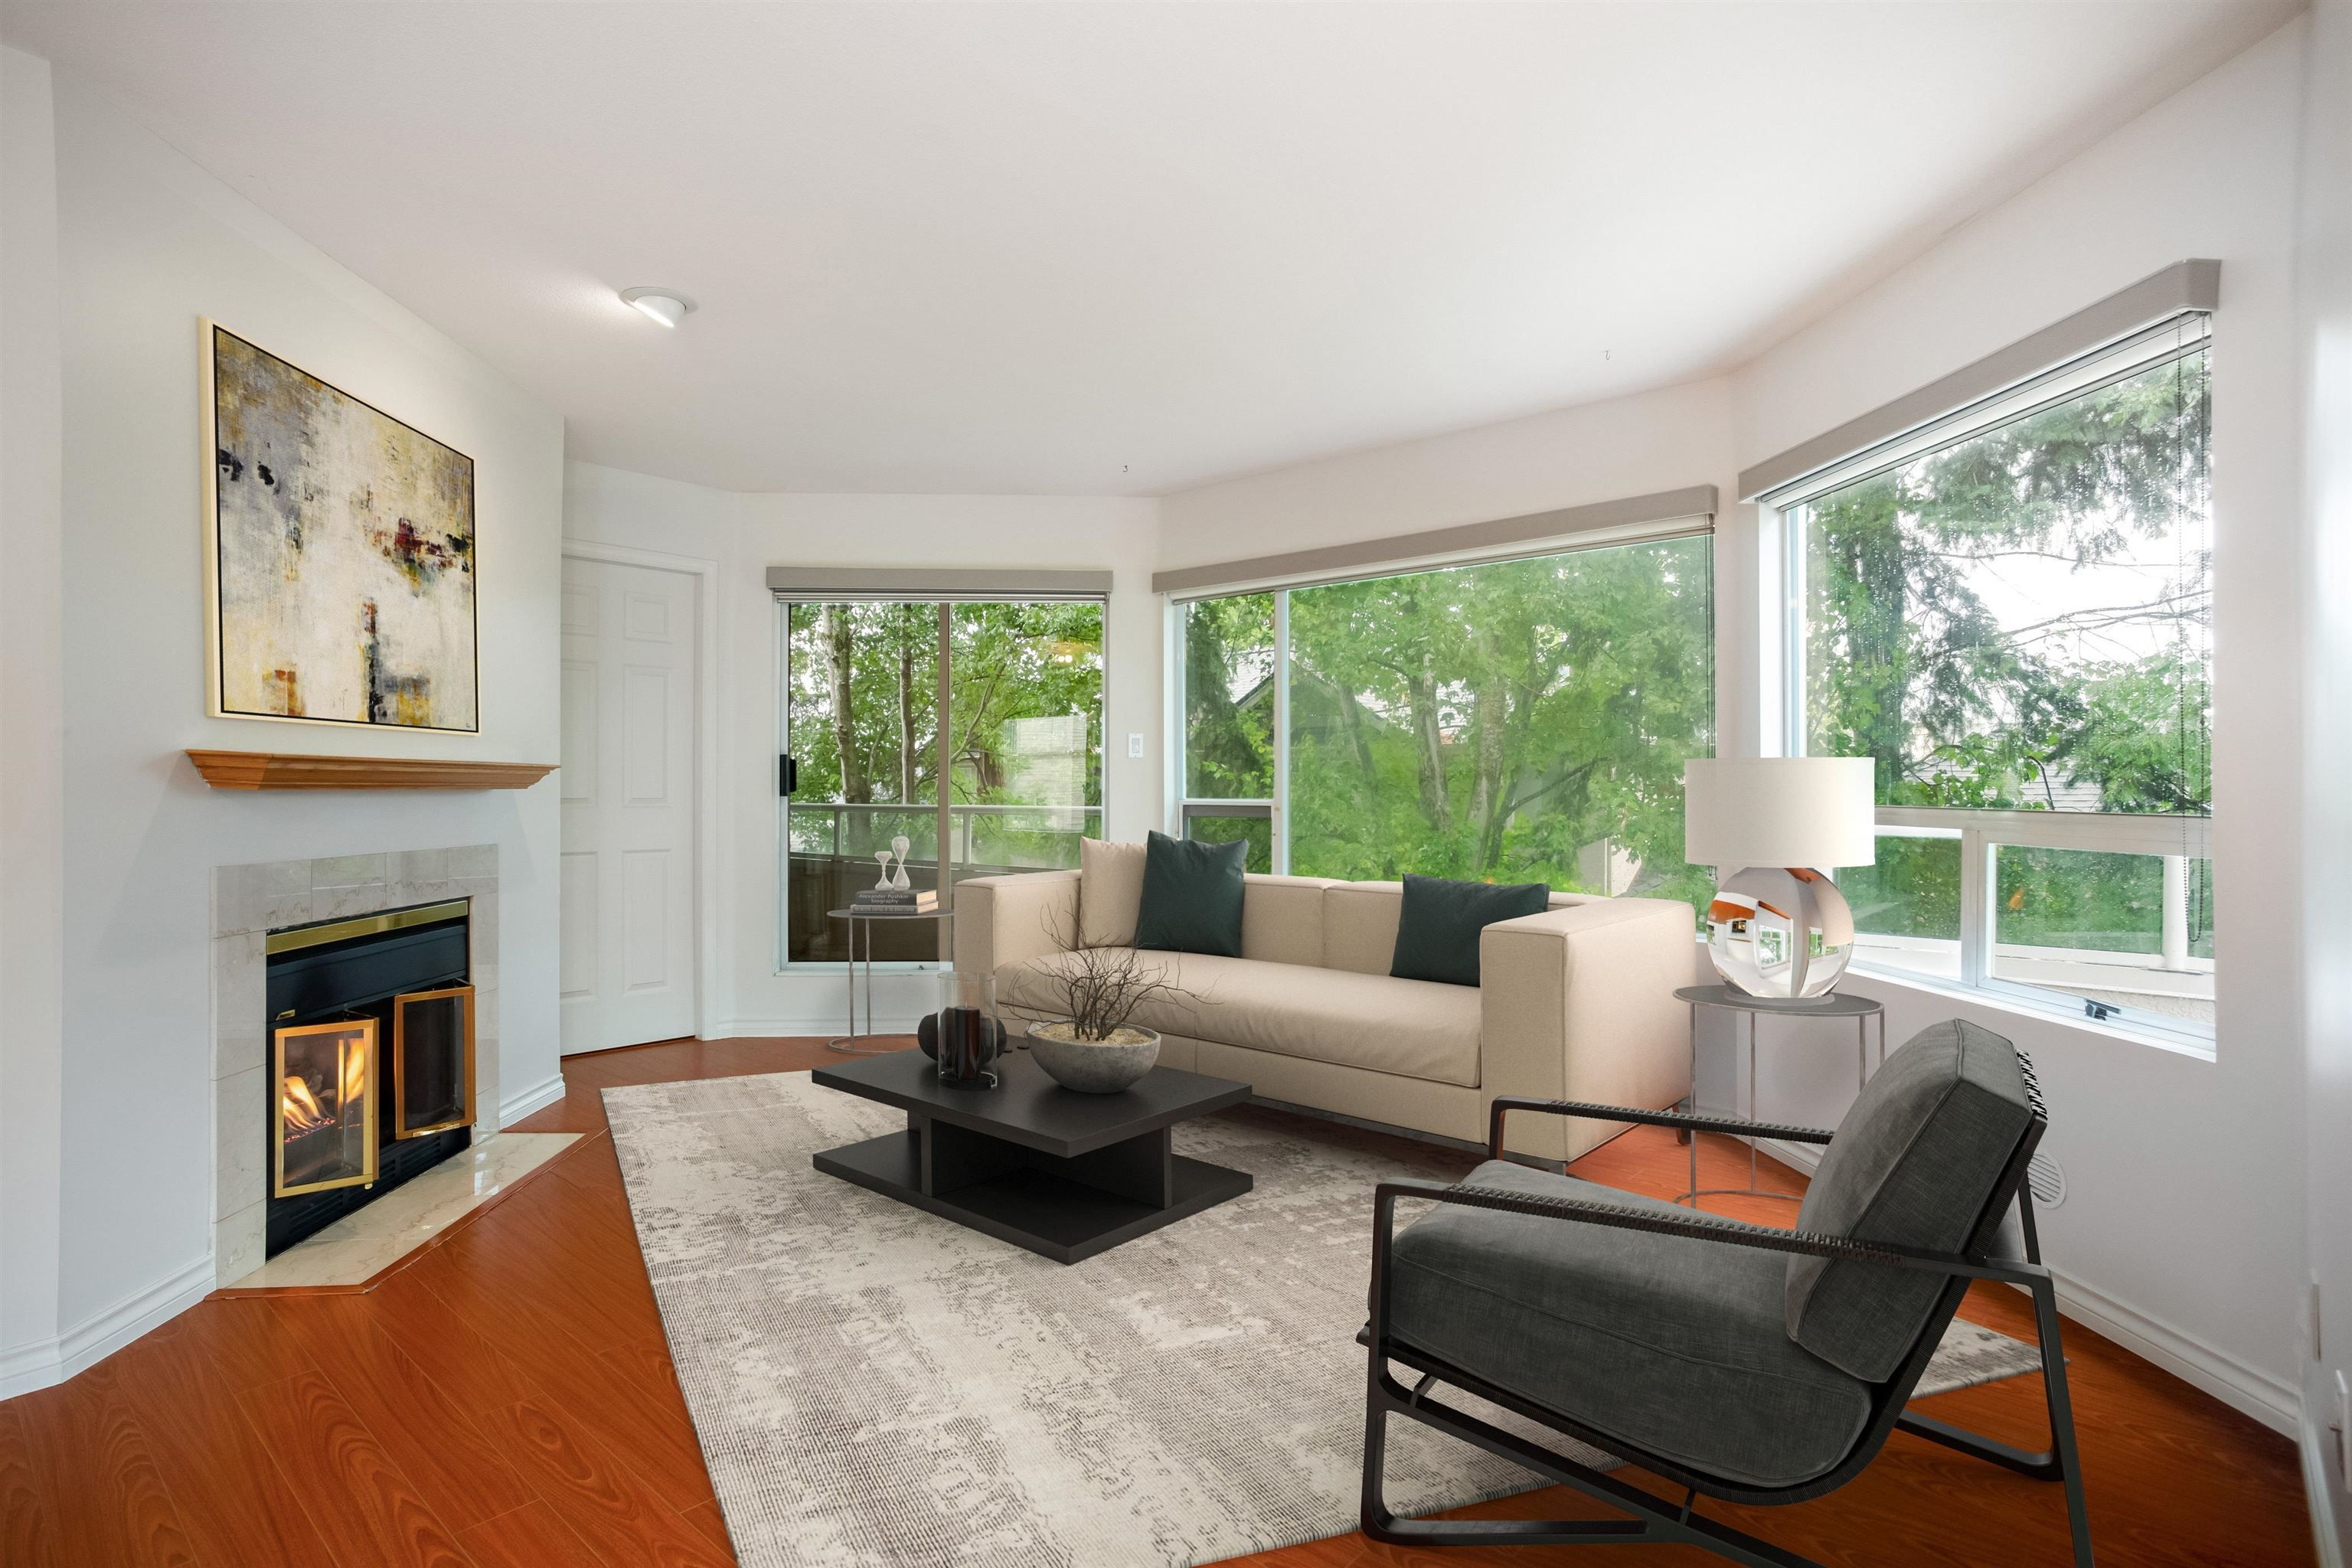 """Main Photo: 209 7480 GILBERT Road in Richmond: Brighouse South Condo for sale in """"Huntington Manor"""" : MLS®# R2617188"""